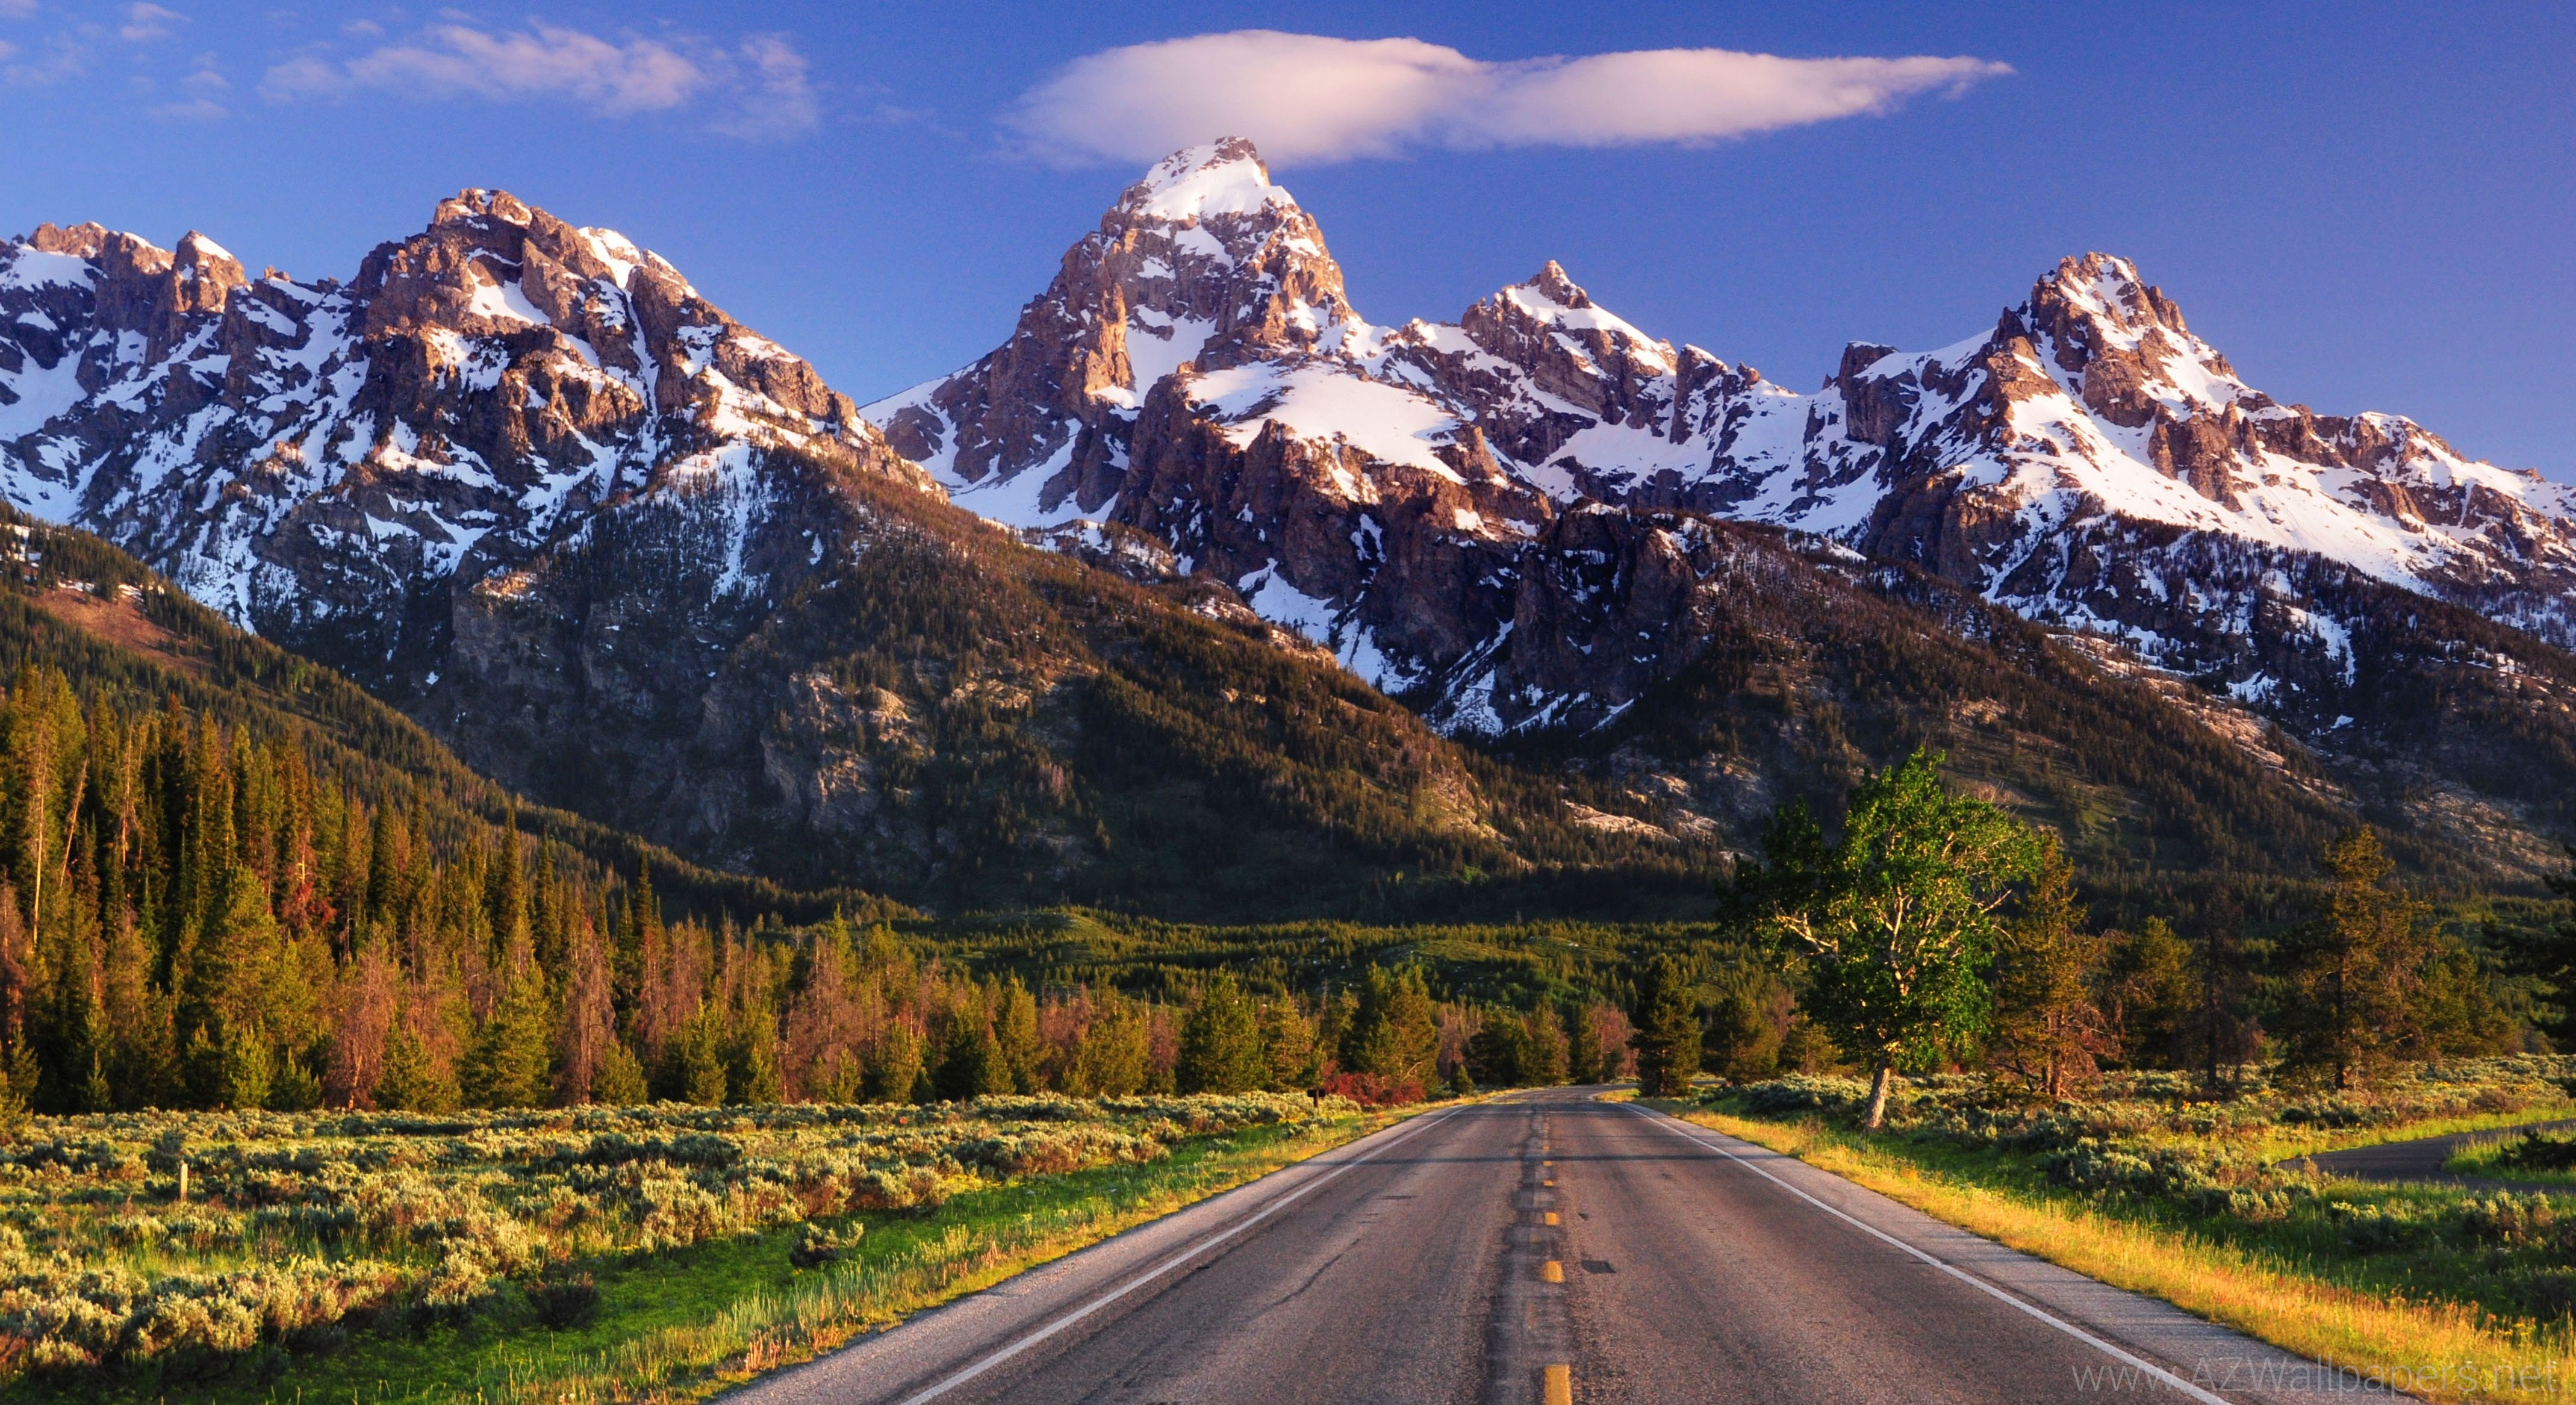 882995_rocky-mountains-montana-usa-wallpaper-other-health-questions_4278x2333_h